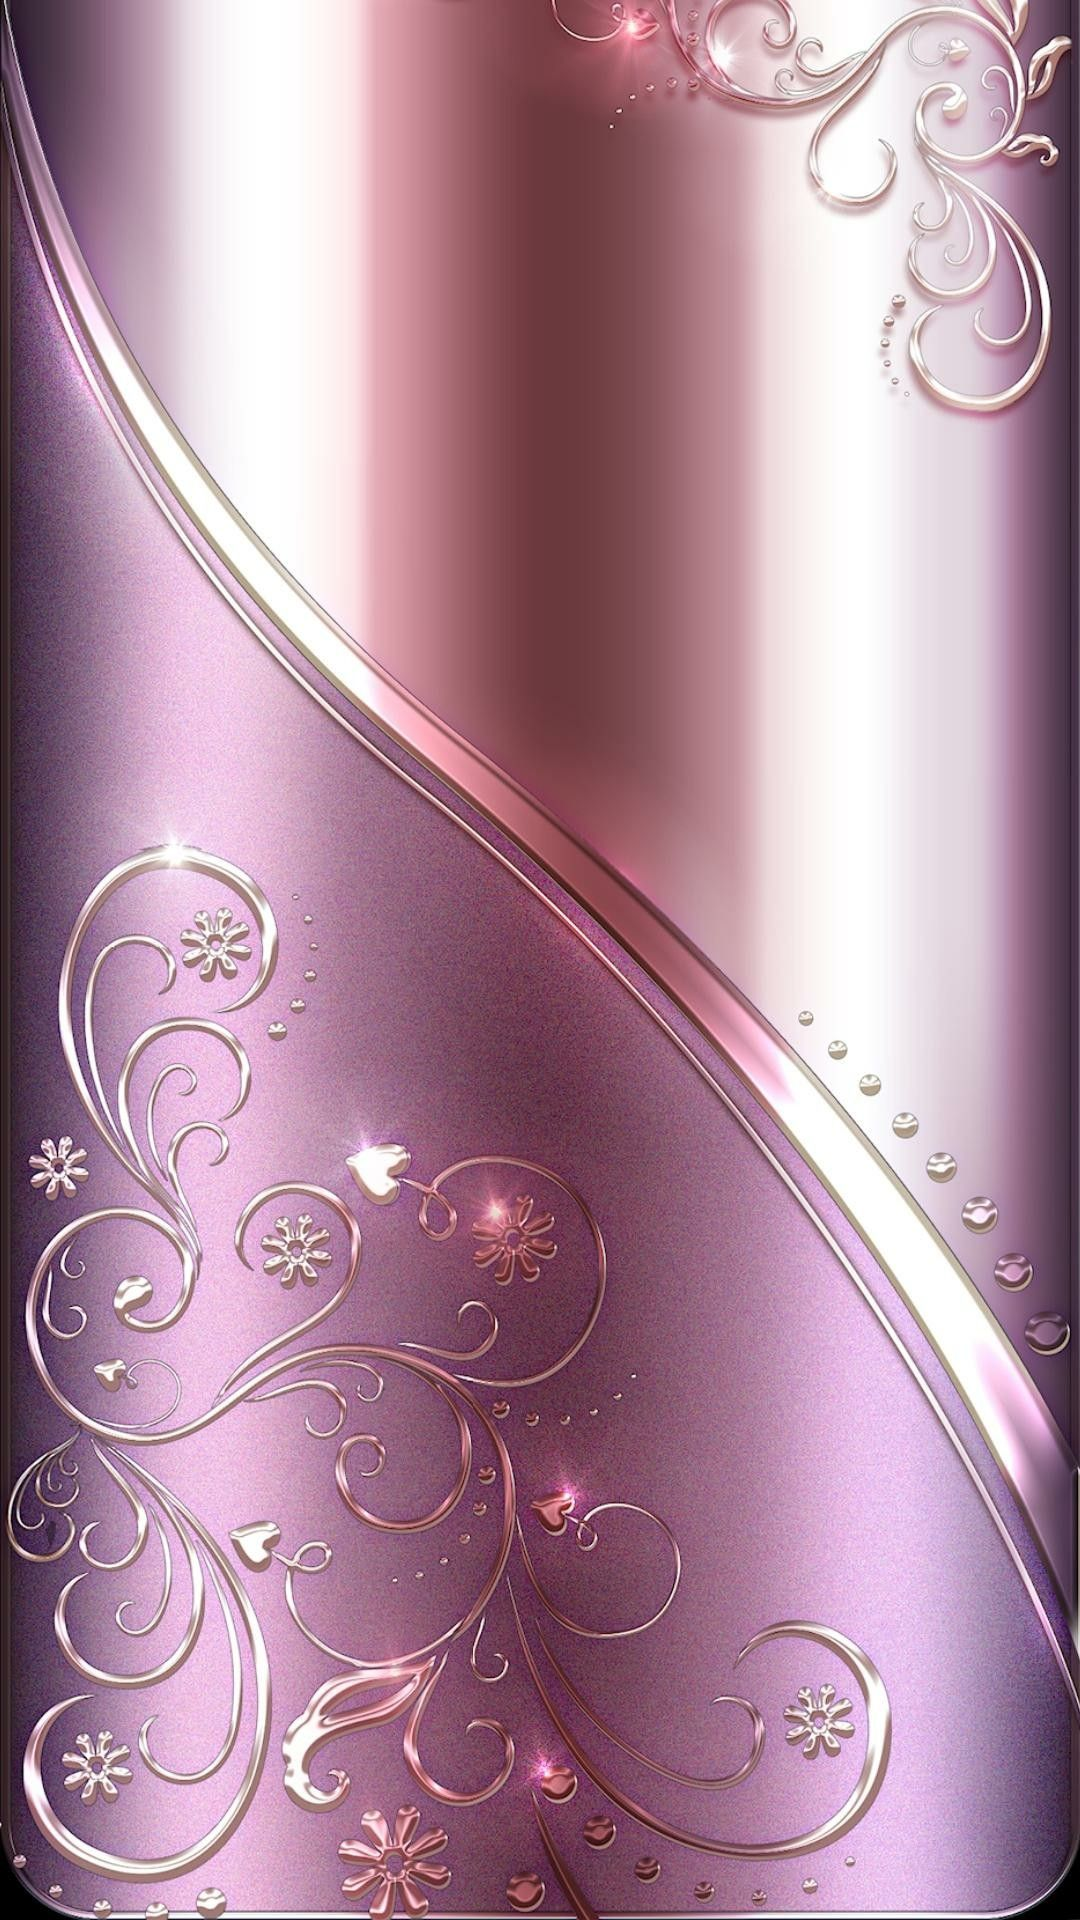 Pin By Bordet Annie On 01 Sony Xperia Wallpapers Bling Wallpaper Android Wallpaper Flower Phone Wallpaper